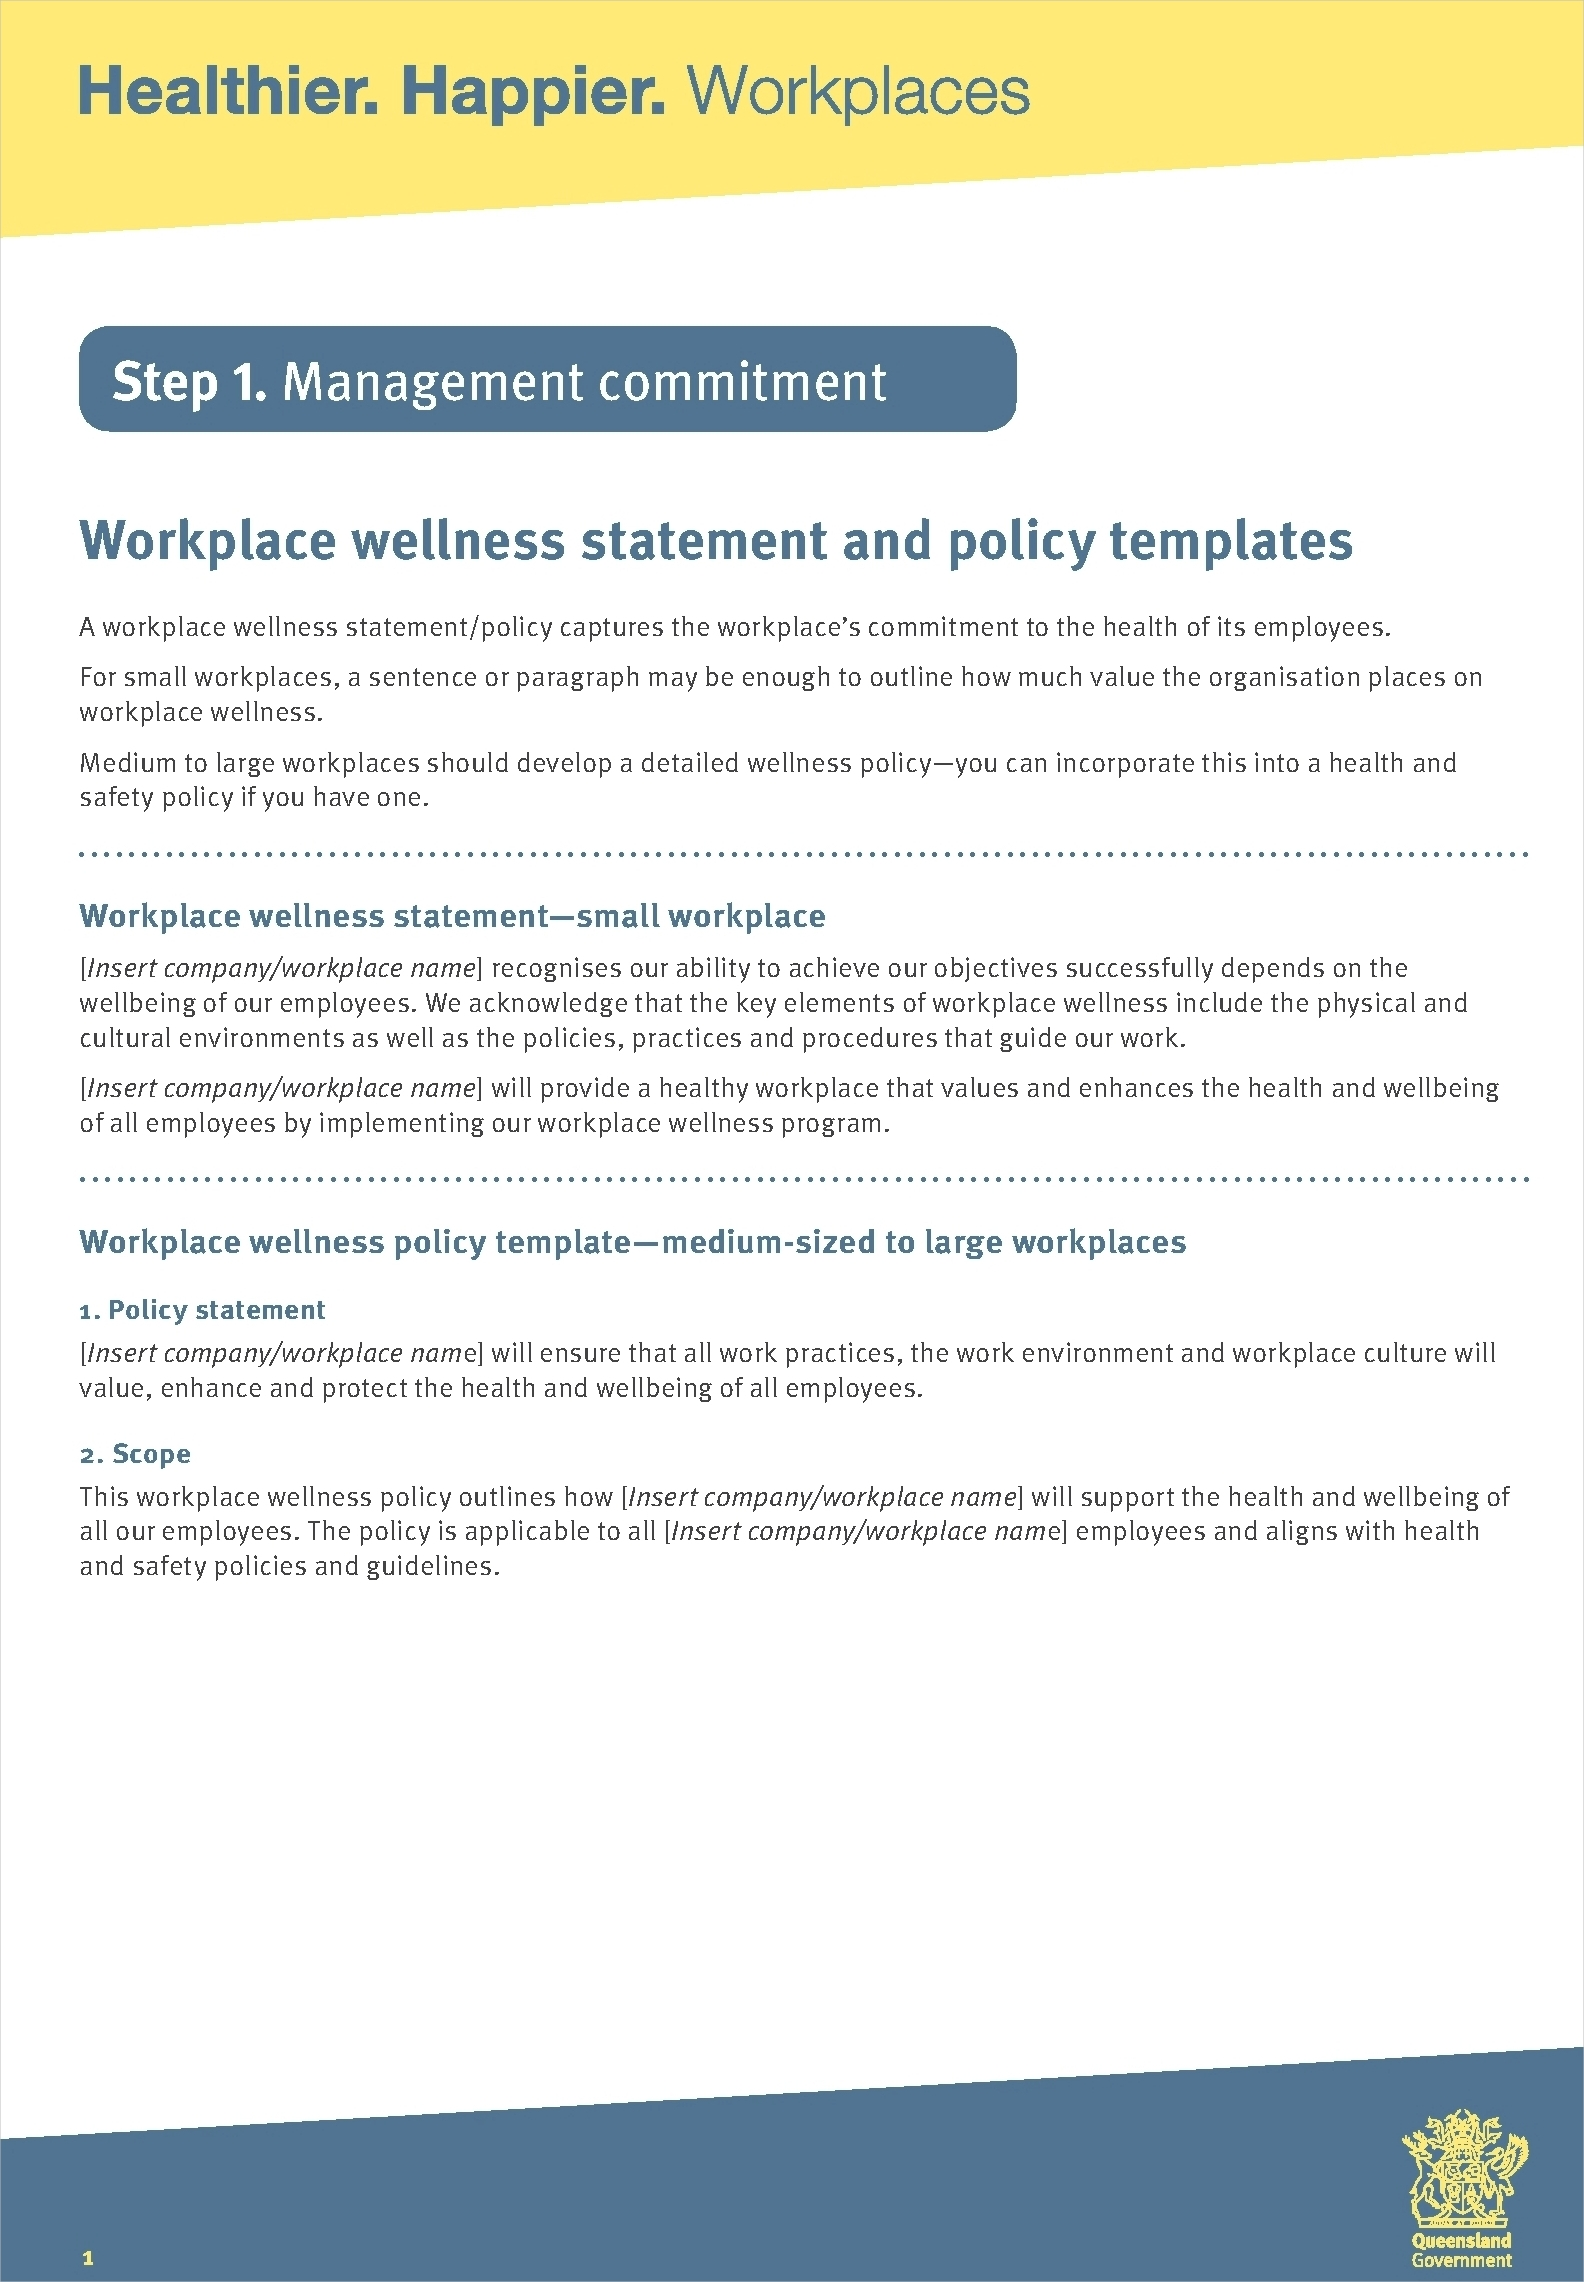 Staff Policy Template Outstanding Workplace Policy Template Image Collection Resume Ideas